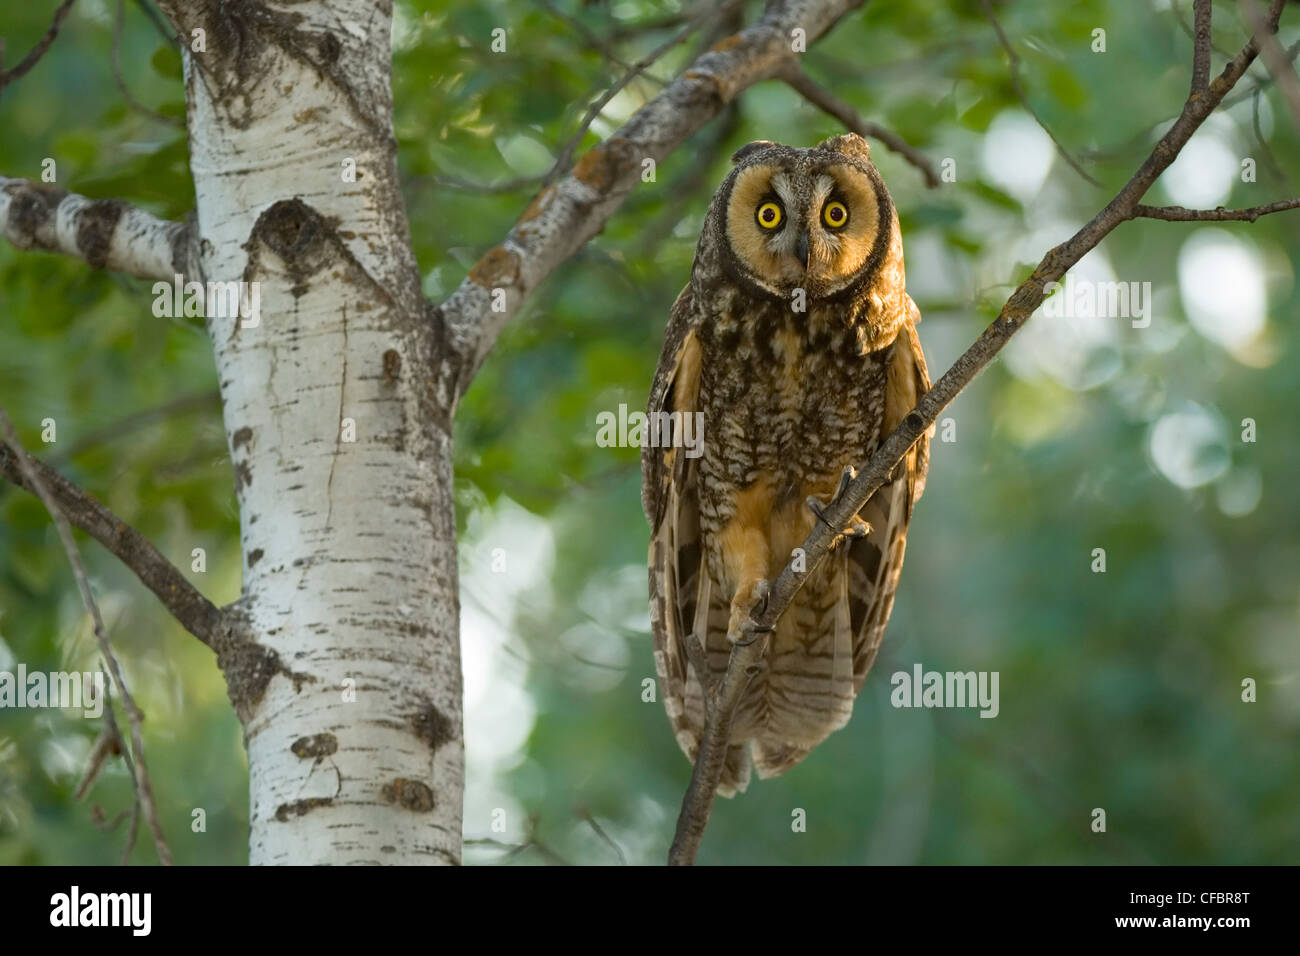 Long-eared owl (Asio otis) perches in aspen tree, Saskatchewan, Canada - Stock Image